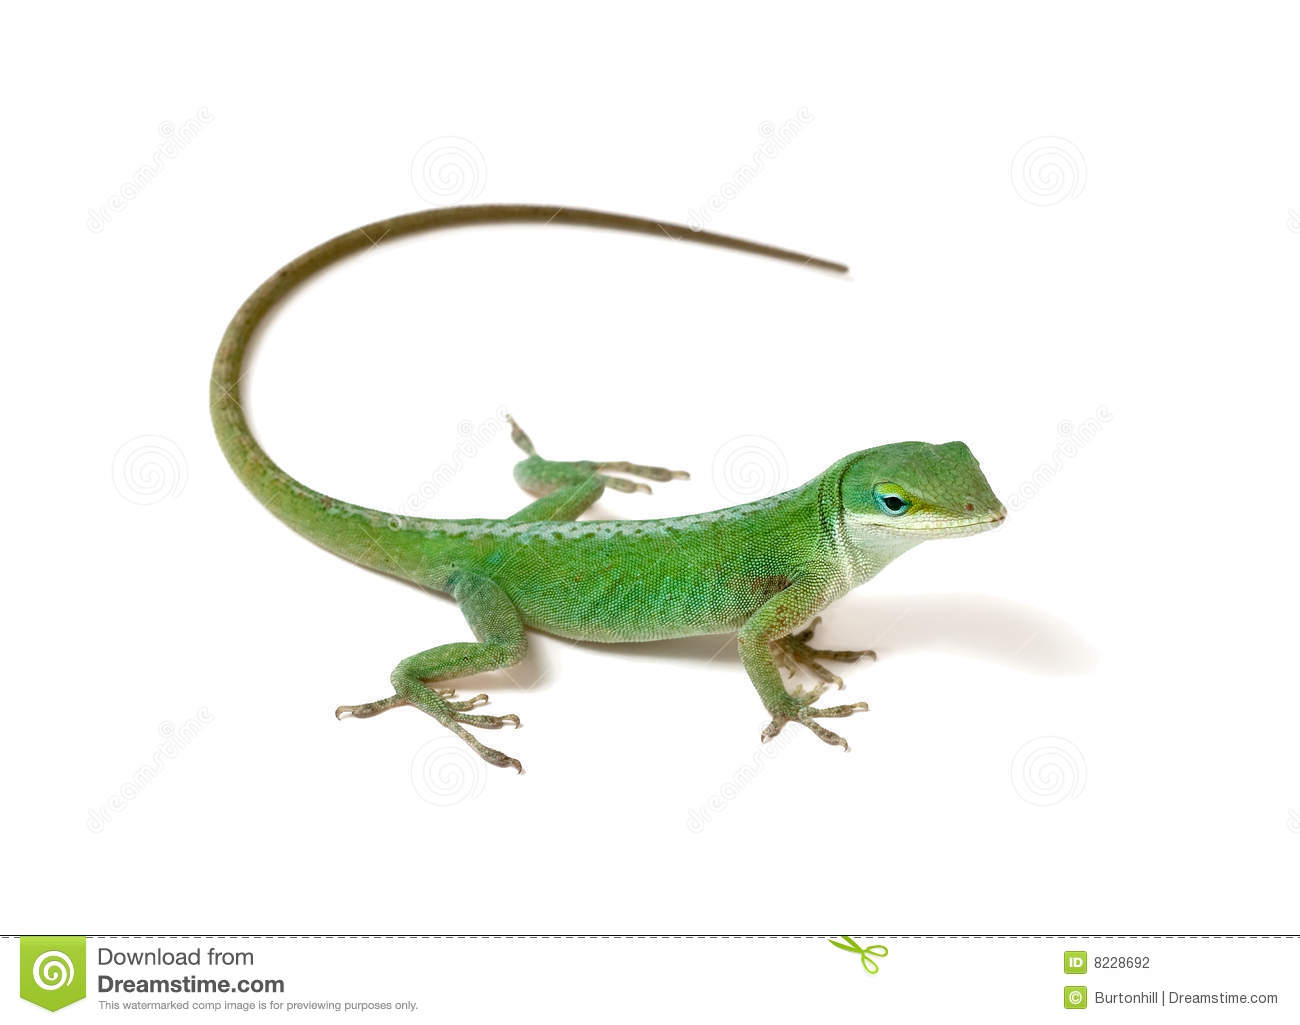 Anole clipart #16, Download drawings